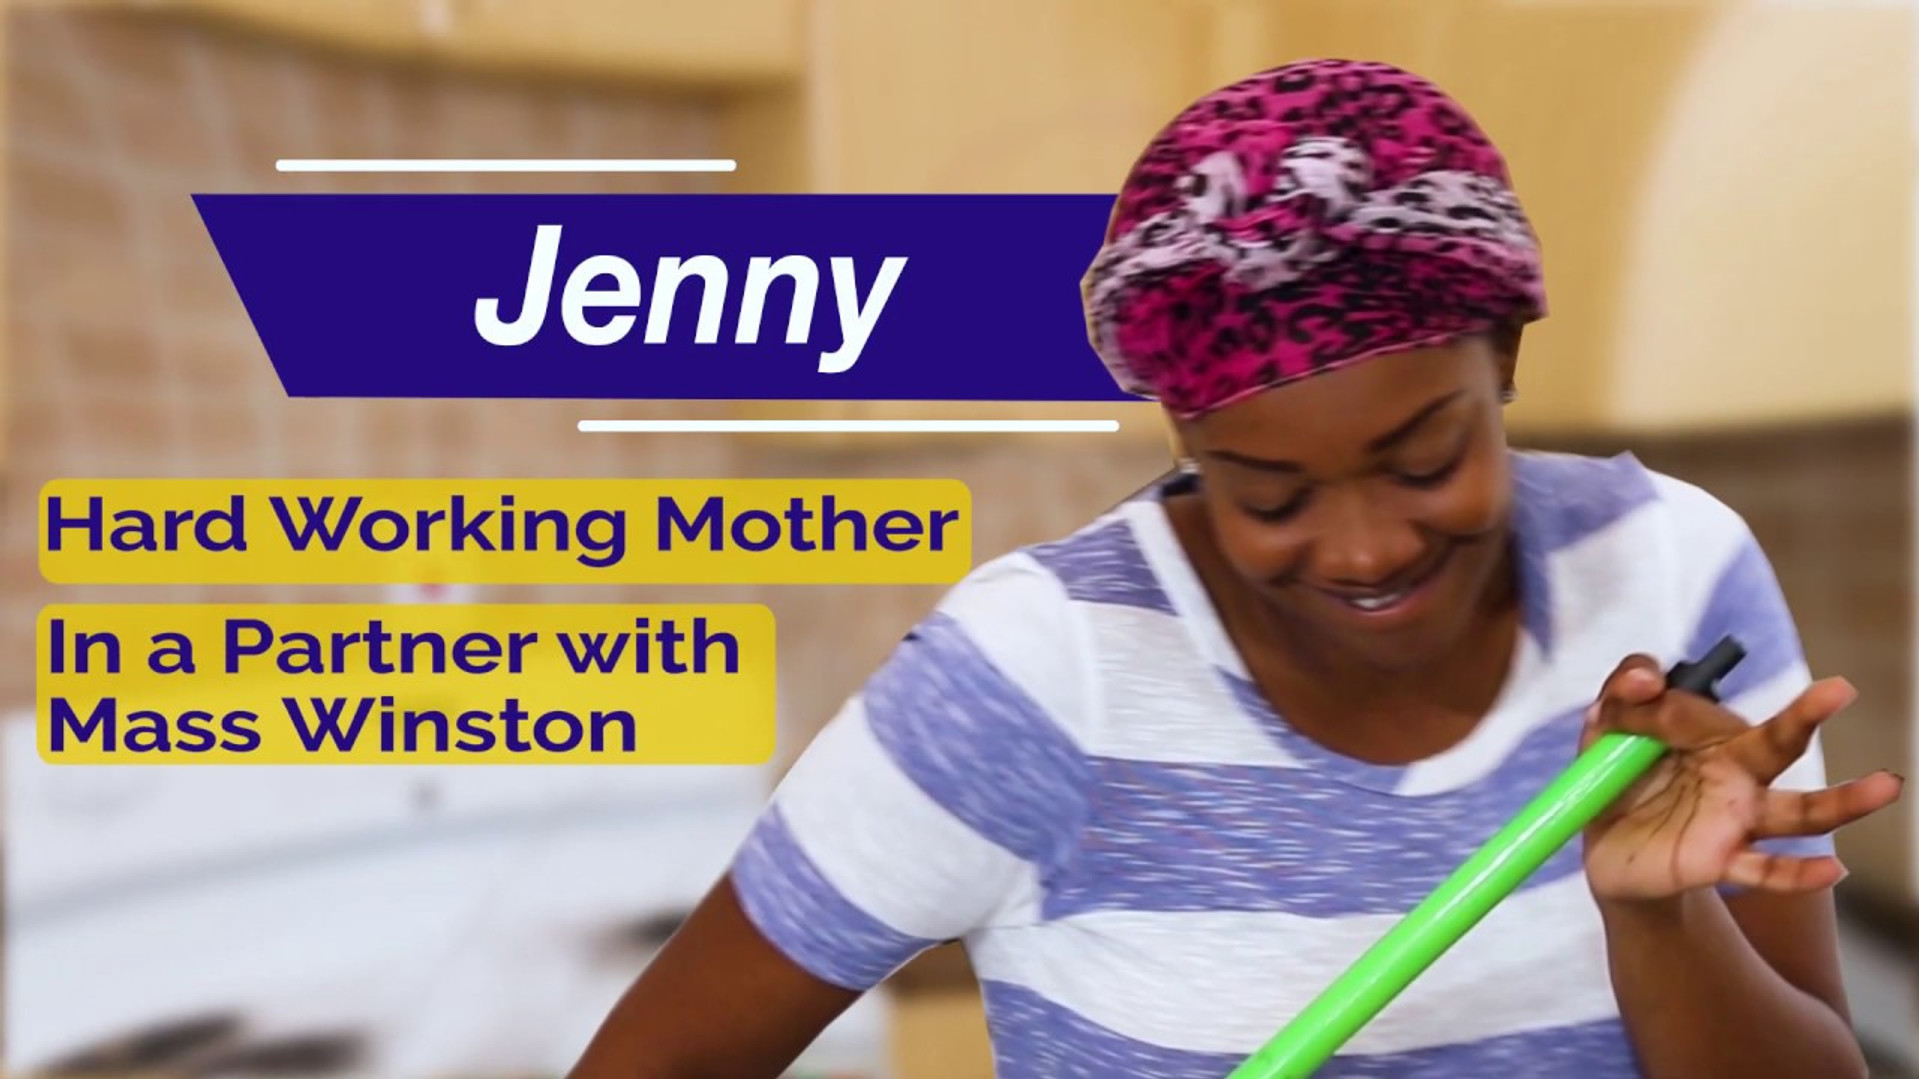 Get A Gateway Pardna Plan | So You Never Have To Worry Like Jenny!